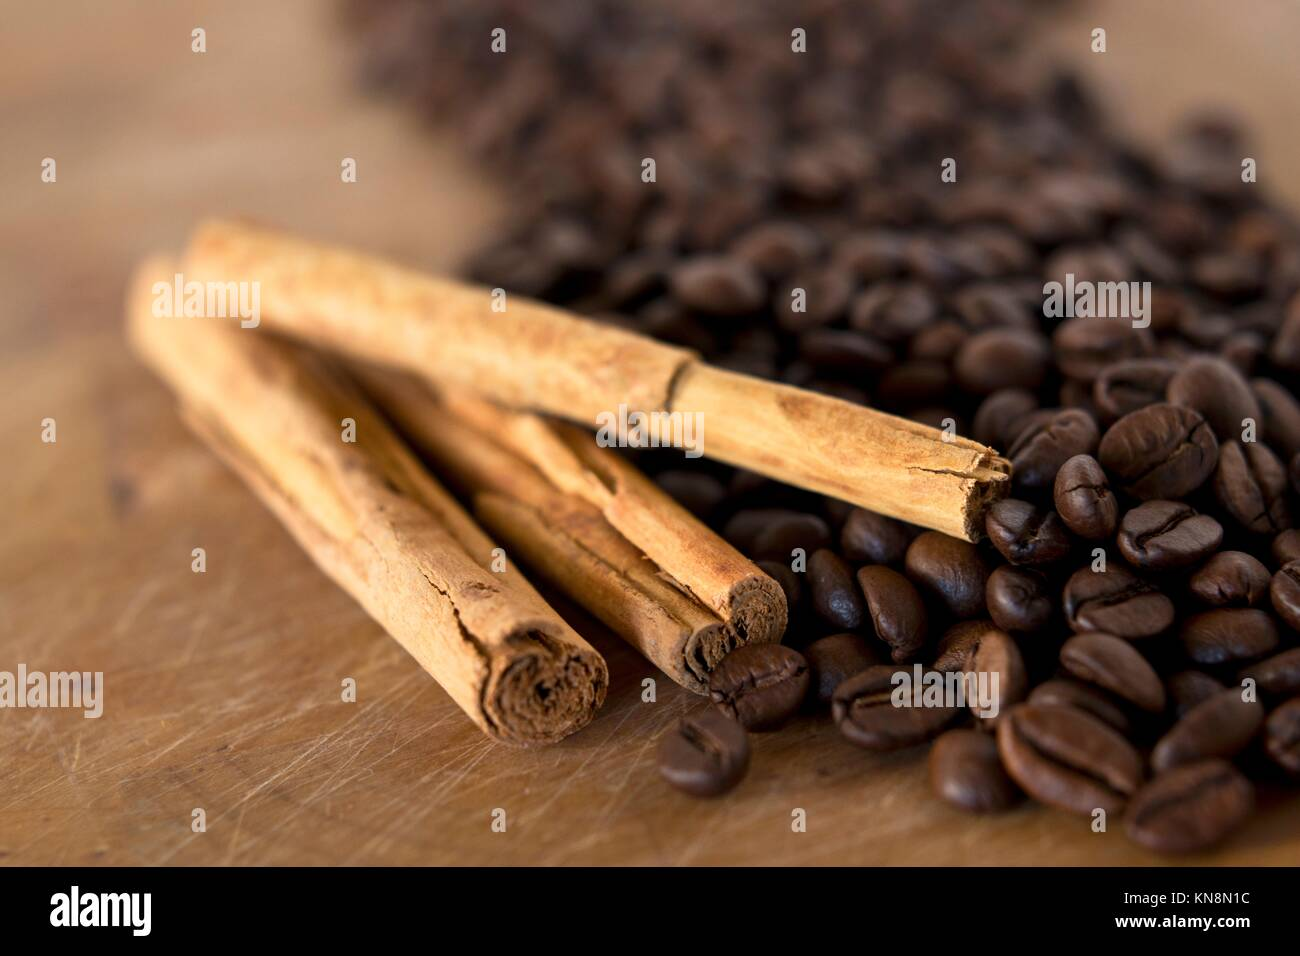 Detail of a pile of coffee beans and cinnamon background. Stock Photo